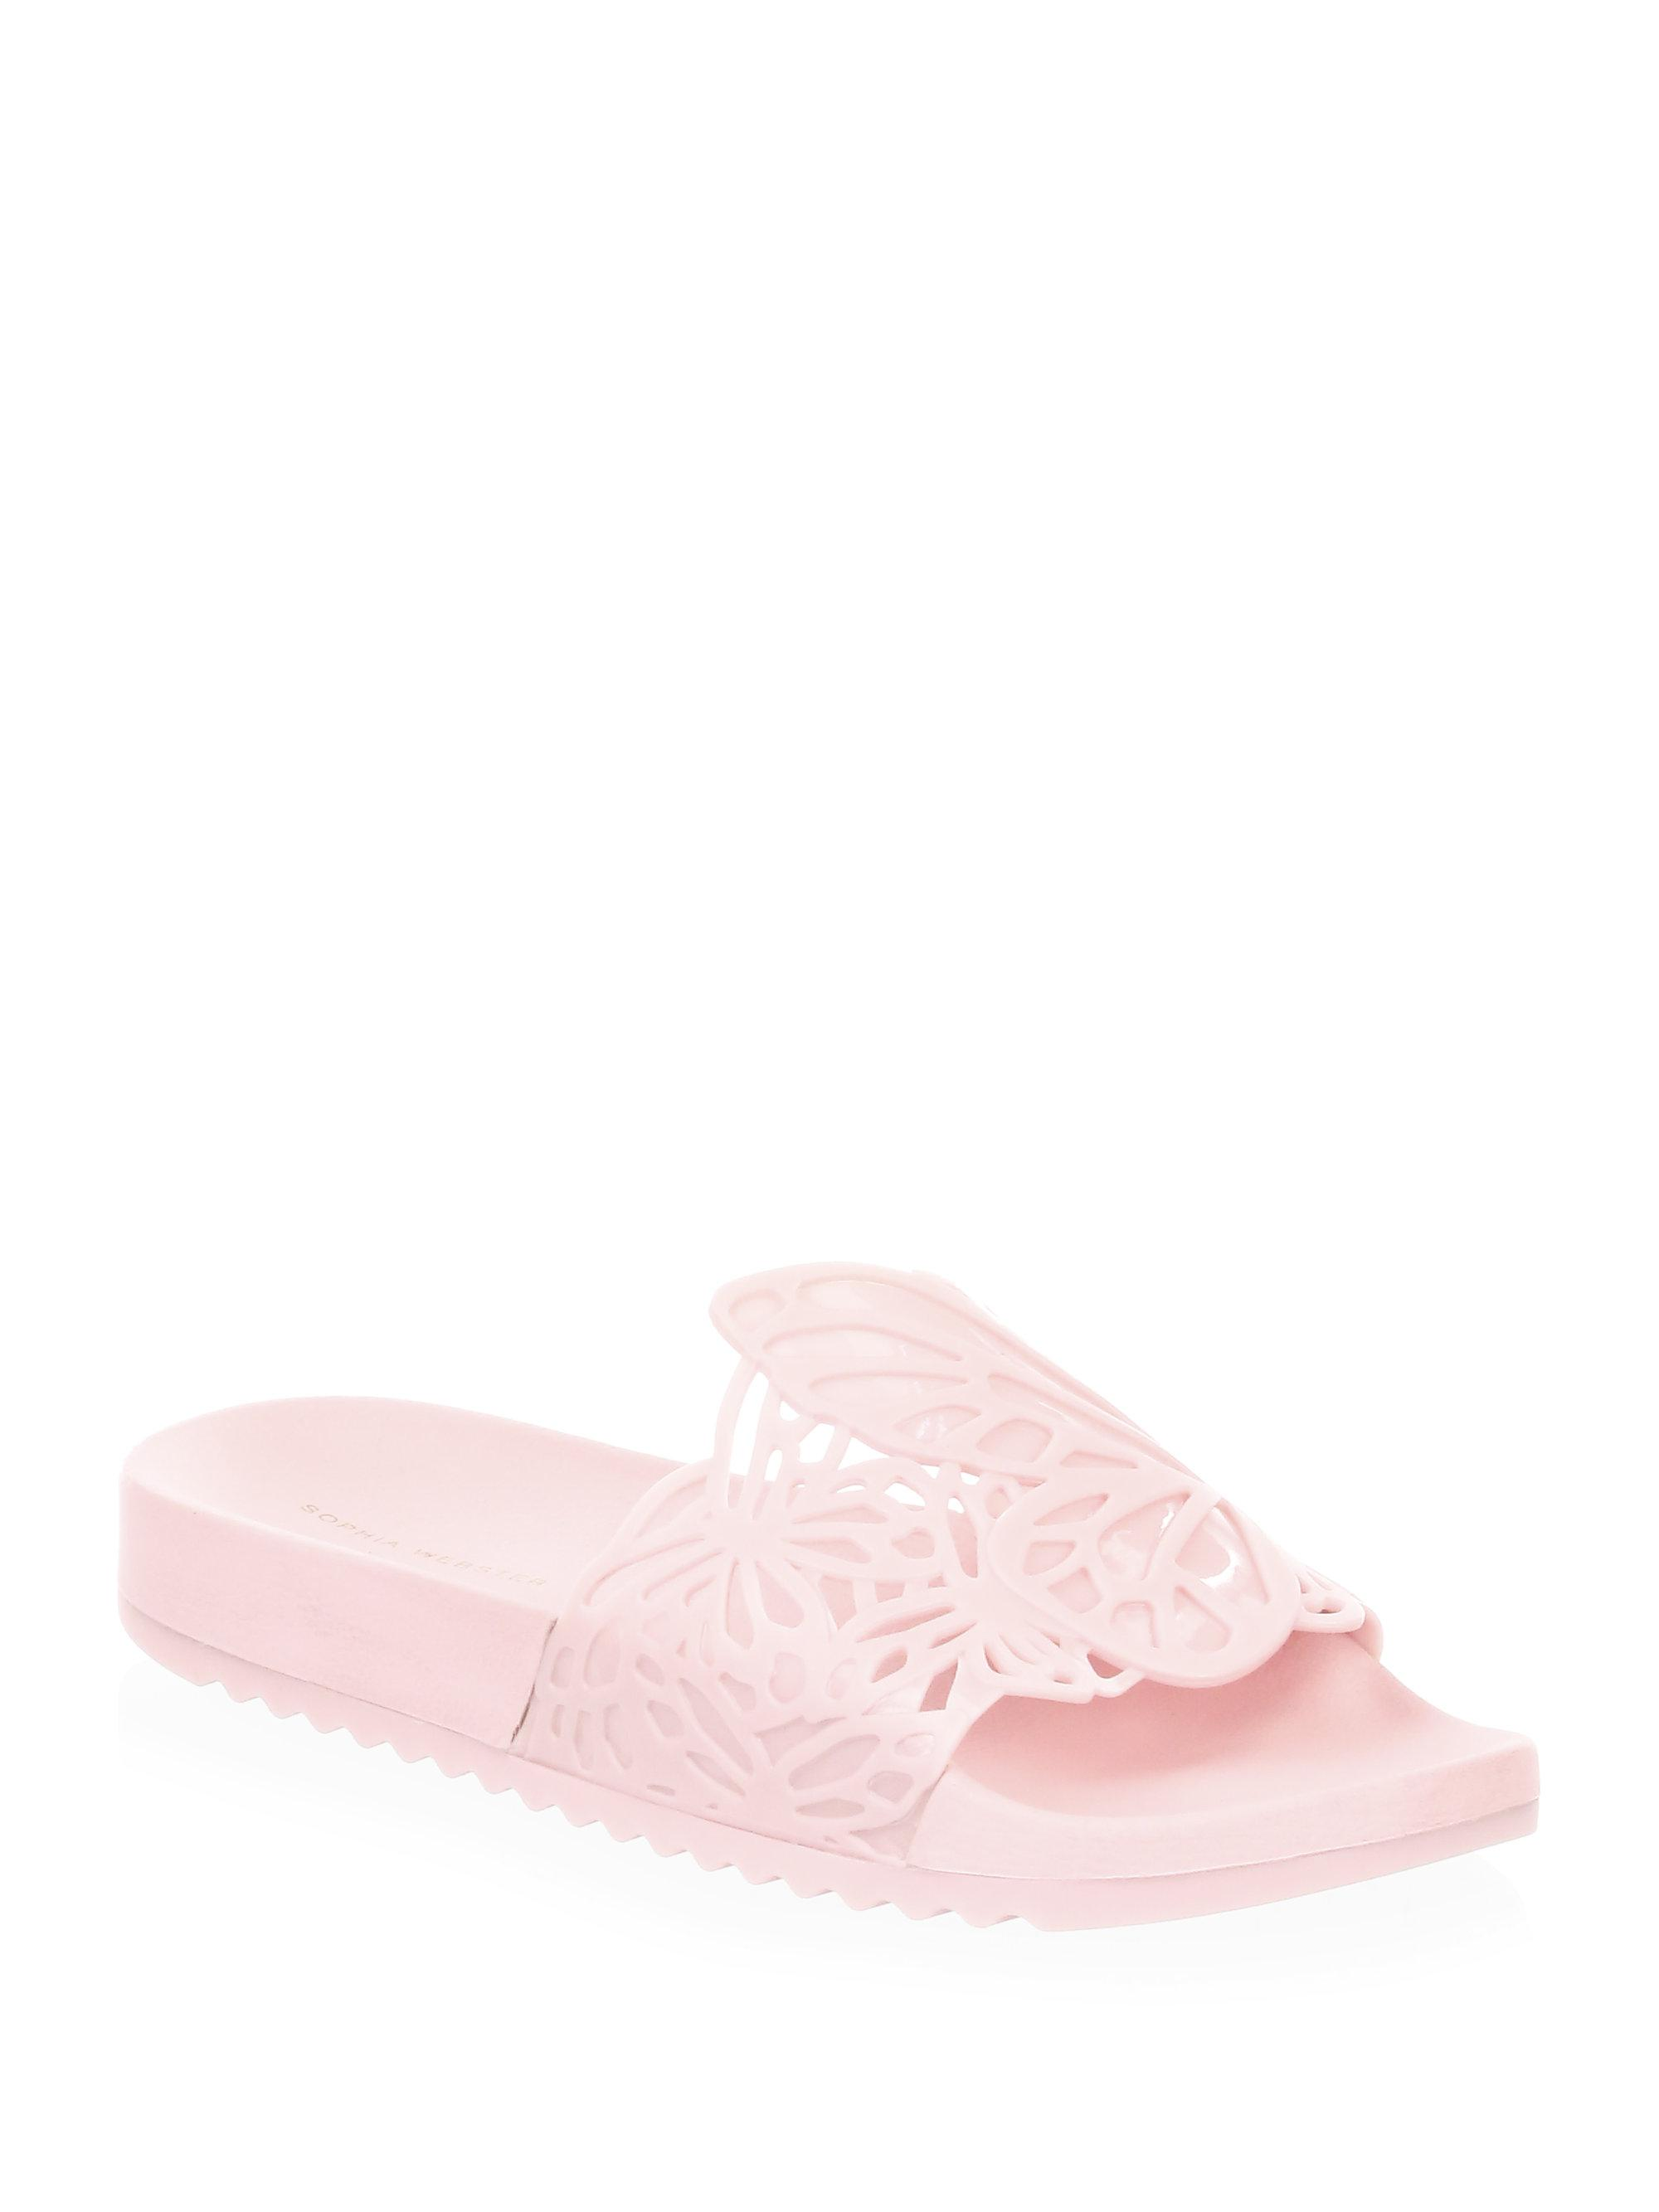 Sophia Webster Pink Lia Butterfly Slides largest supplier cheap price KLL78Je1